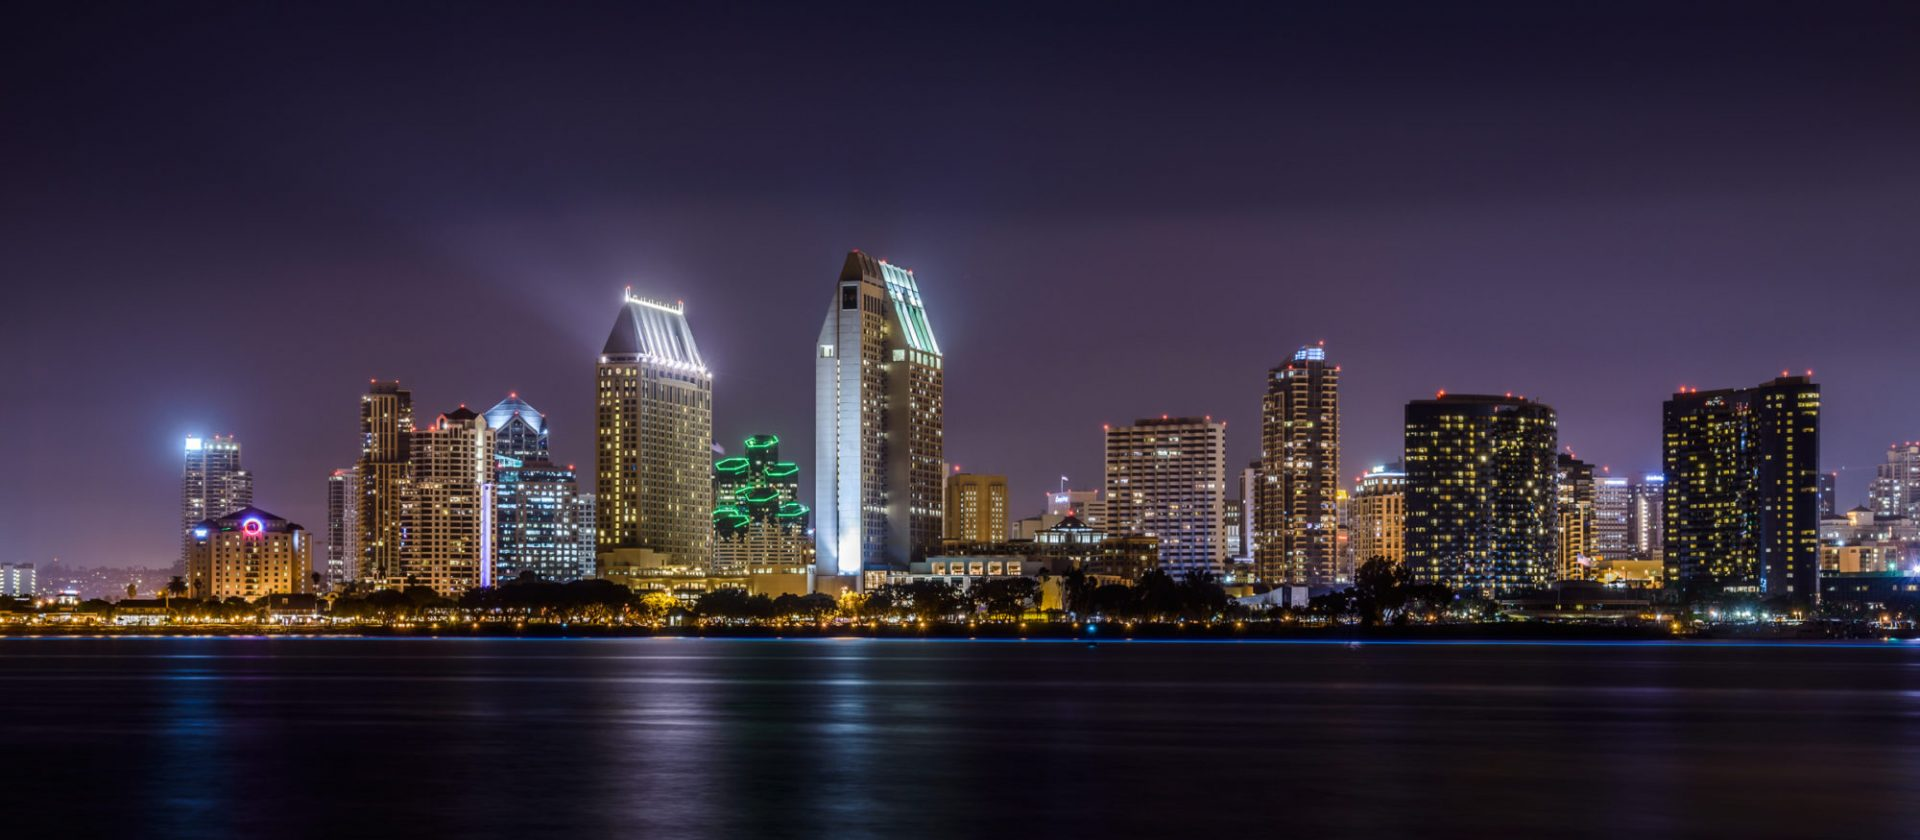 1st place, Iconic San Diego category: Alexander S. Kunz